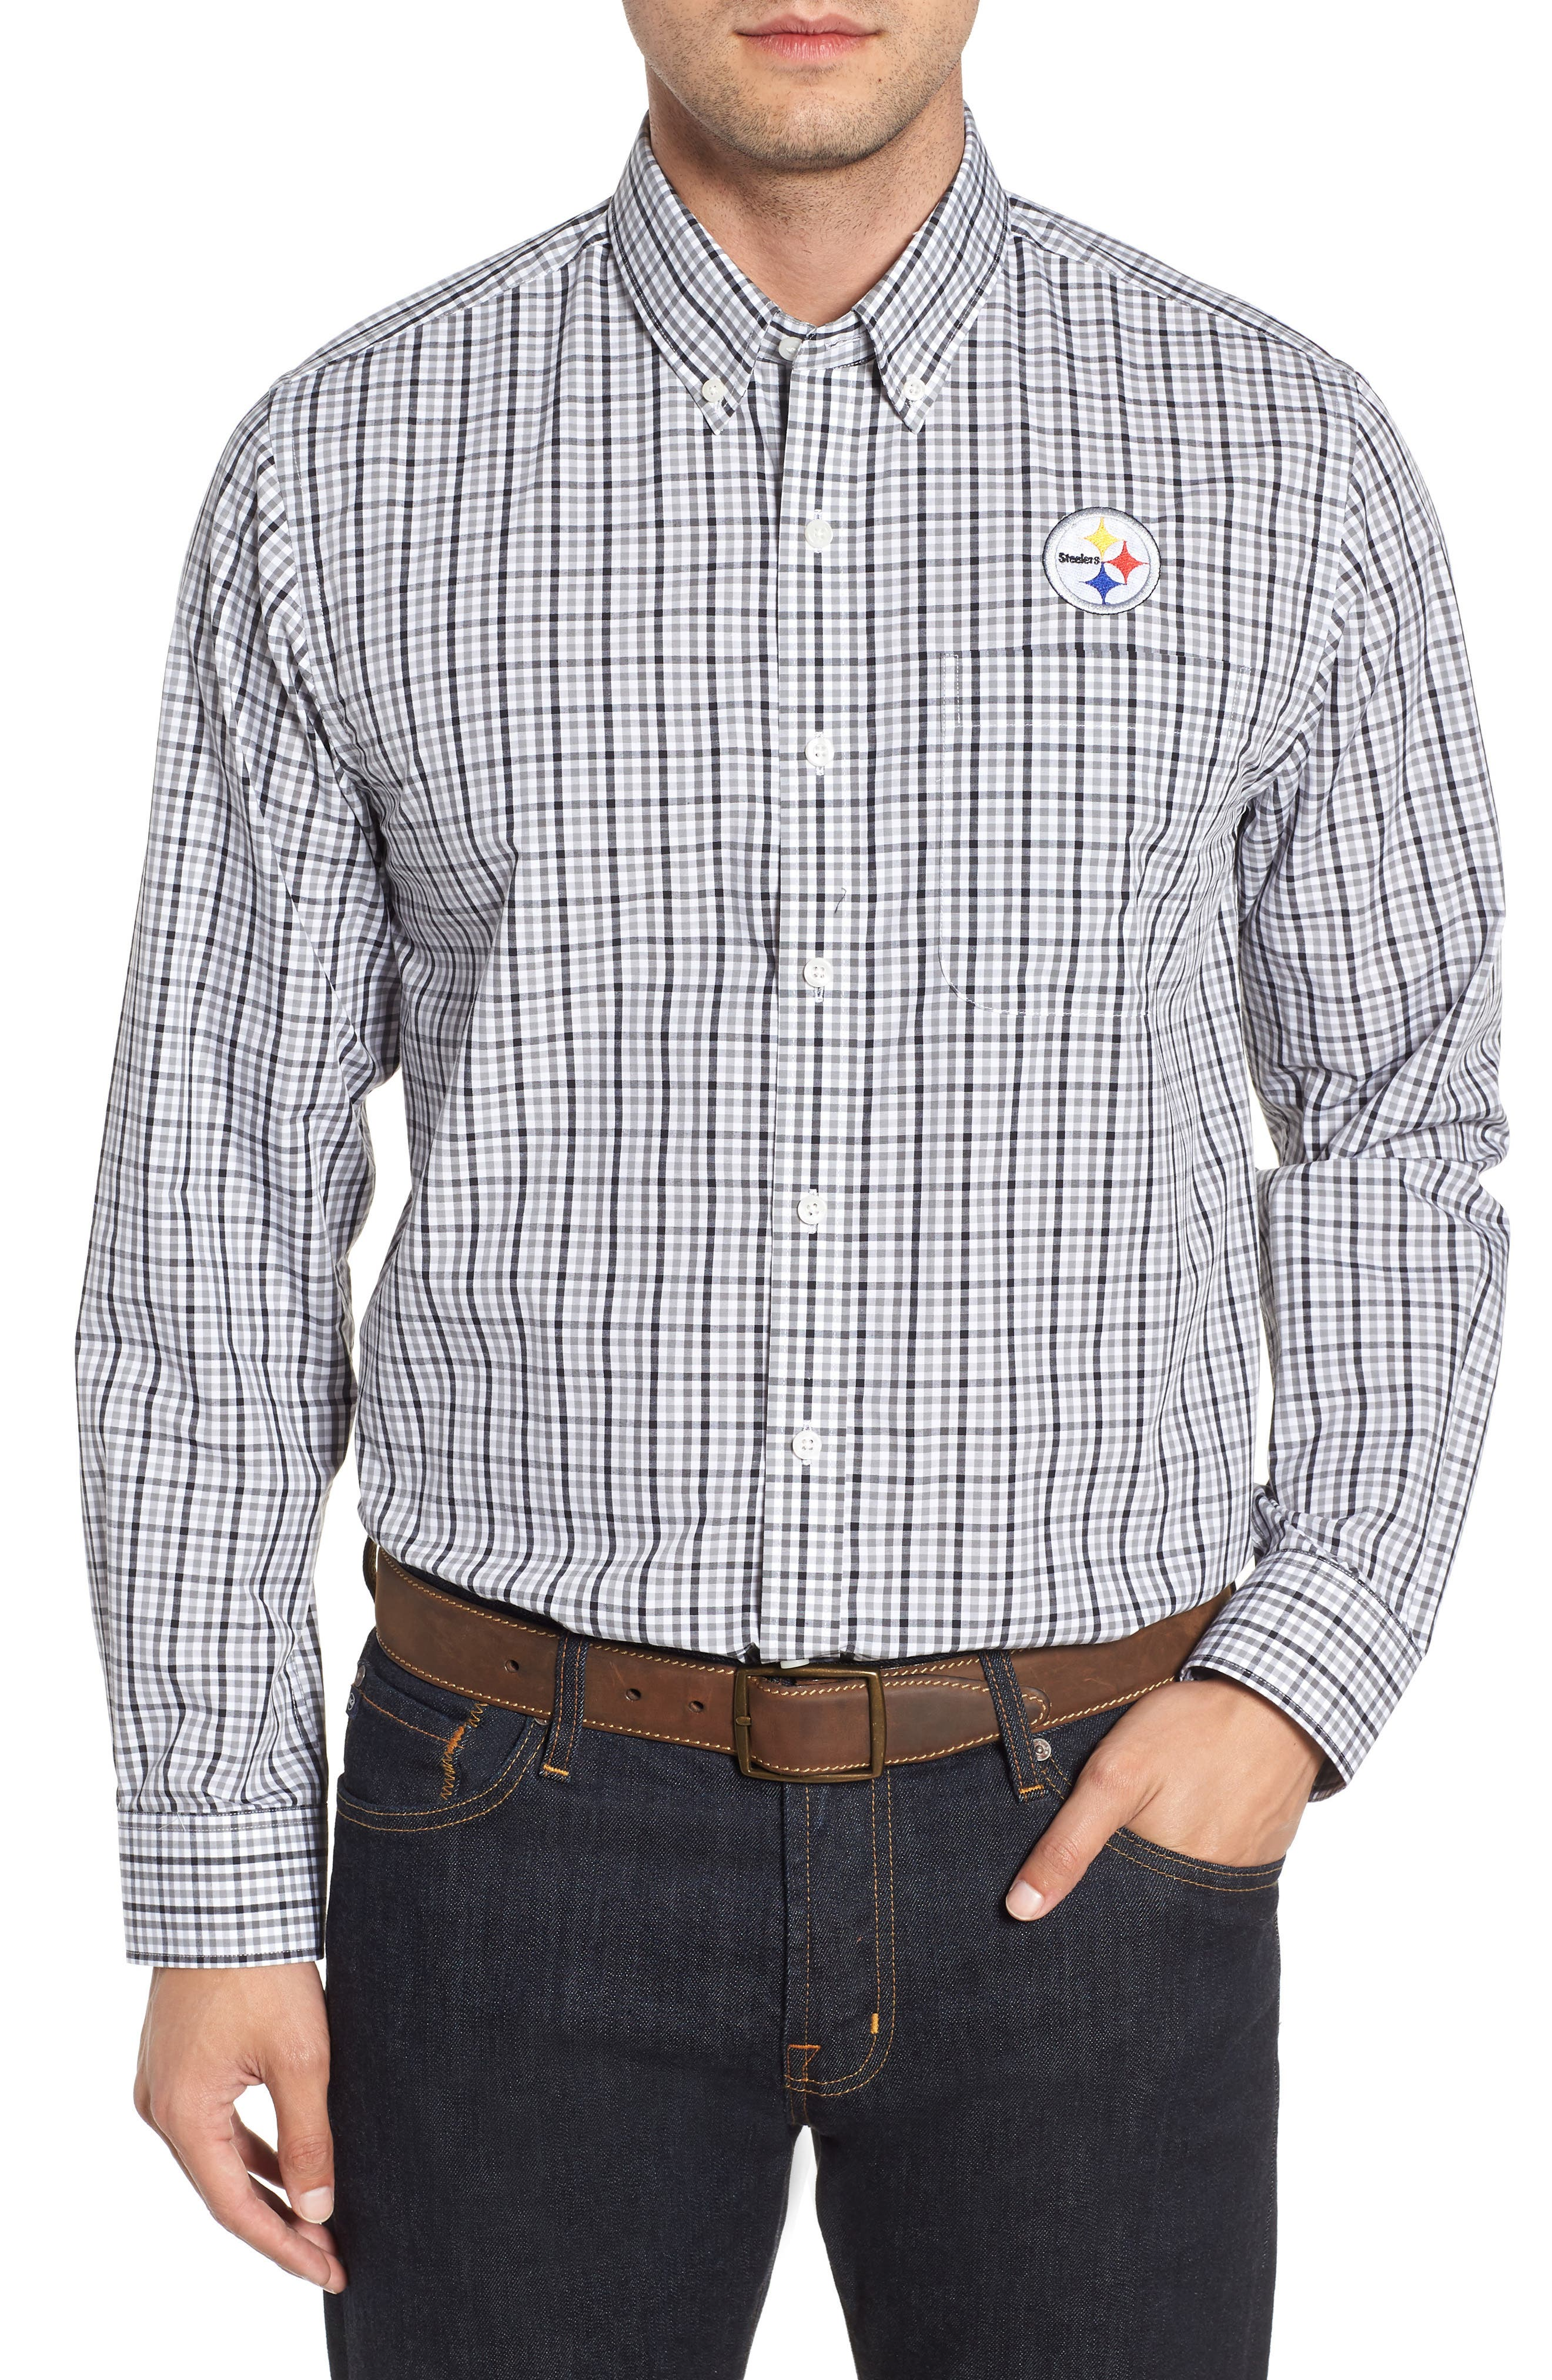 Pittsburgh Steelers - Gilman Regular Fit Plaid Sport Shirt,                             Main thumbnail 1, color,                             BLACK